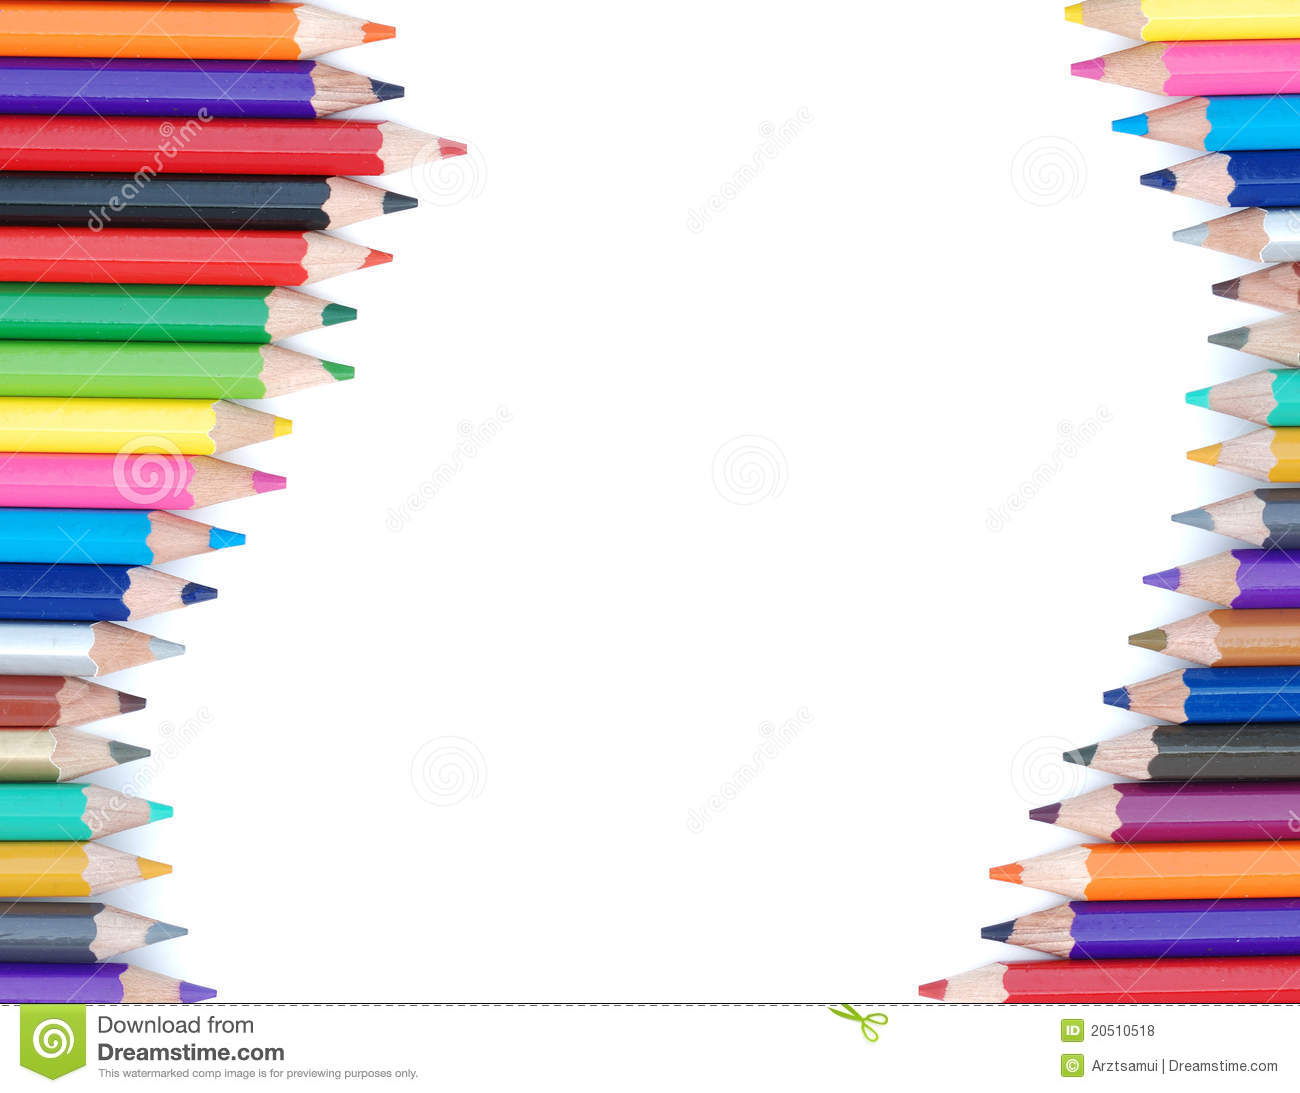 Clipart Images Pencil Pencil Color Background Royalty Free Stock Photos Image